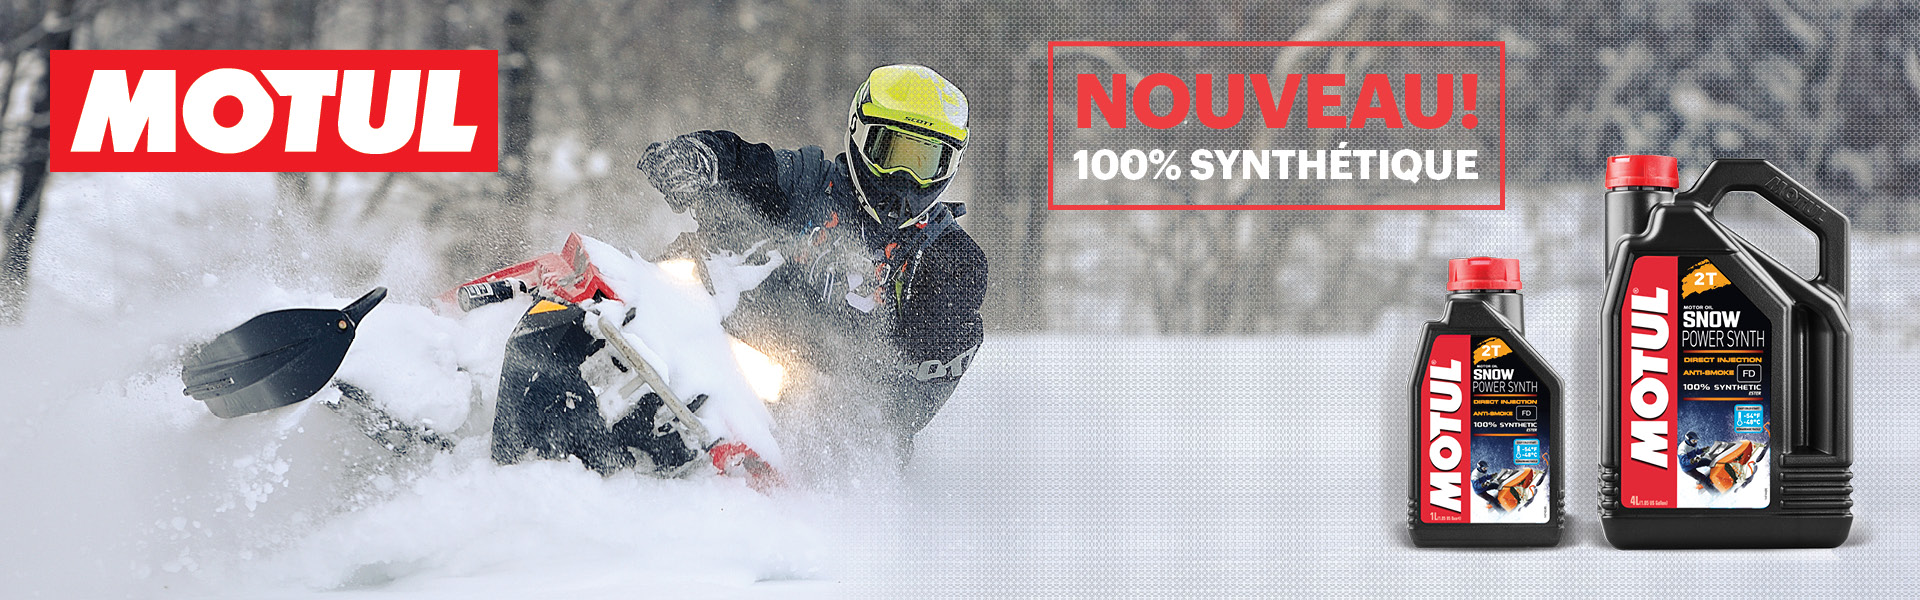 Motul-Snow-power-synth